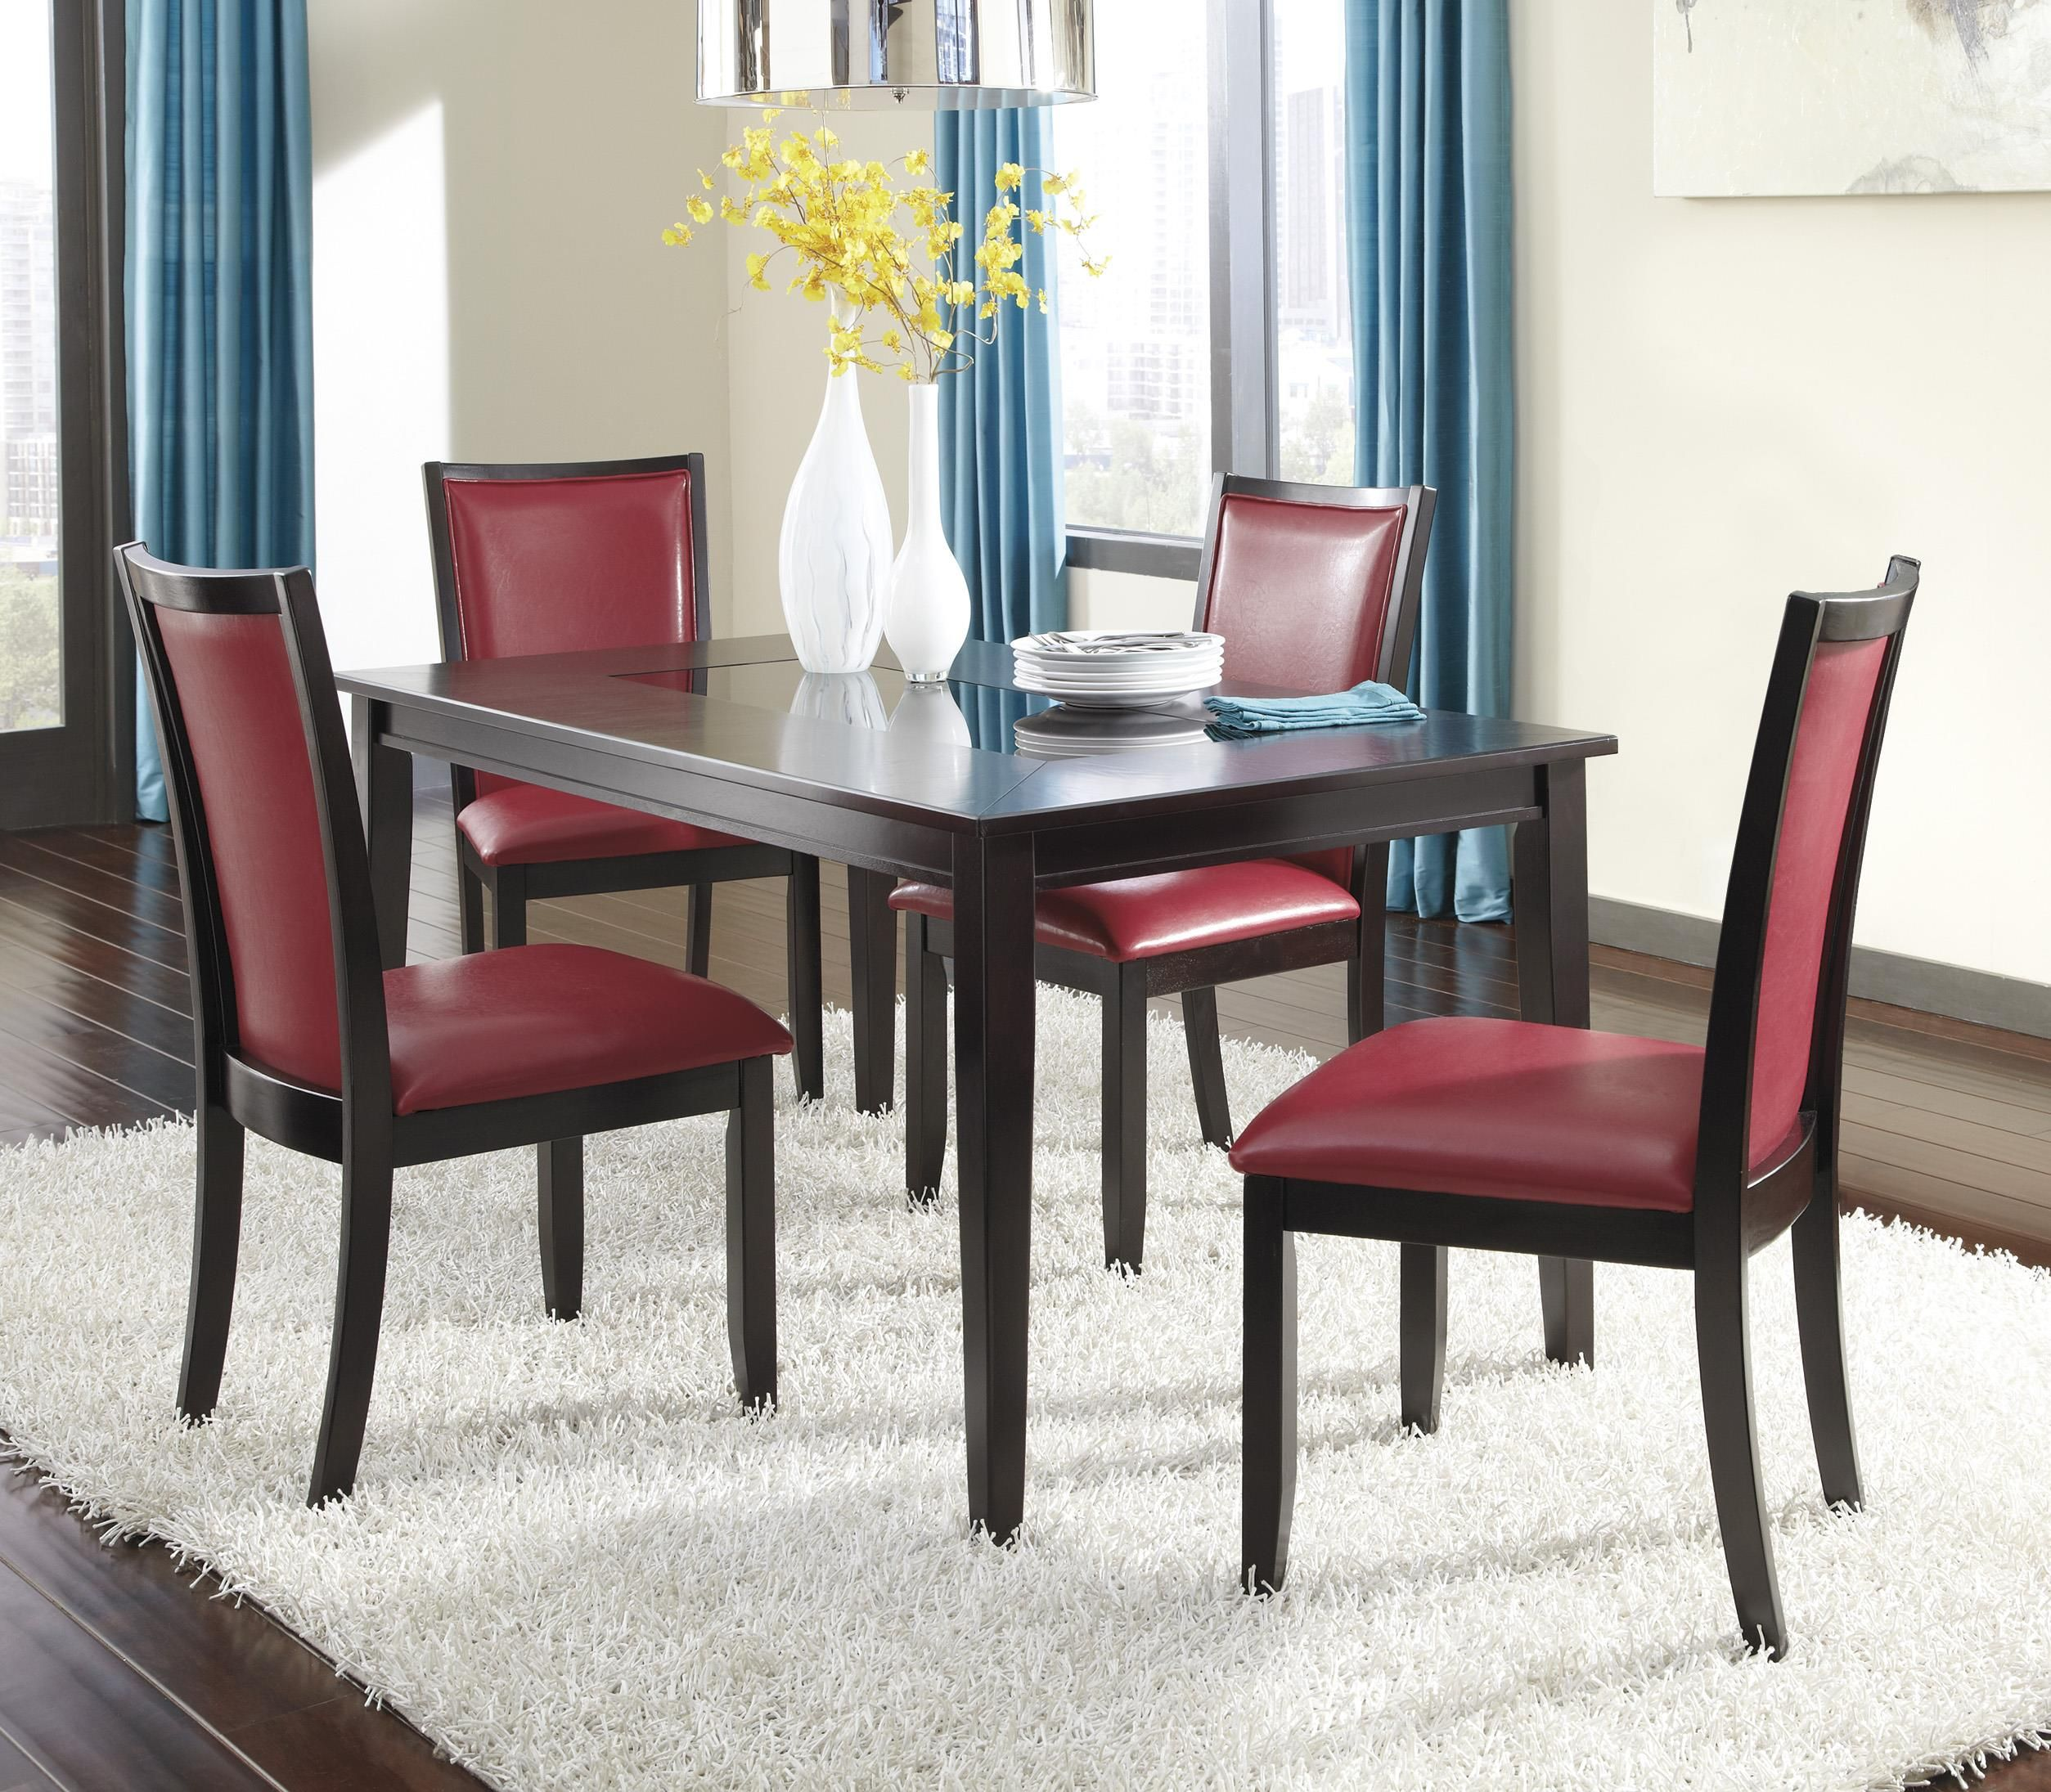 Trishelle 5 Piece Rectangular Dining Table Set With Red Chairs By